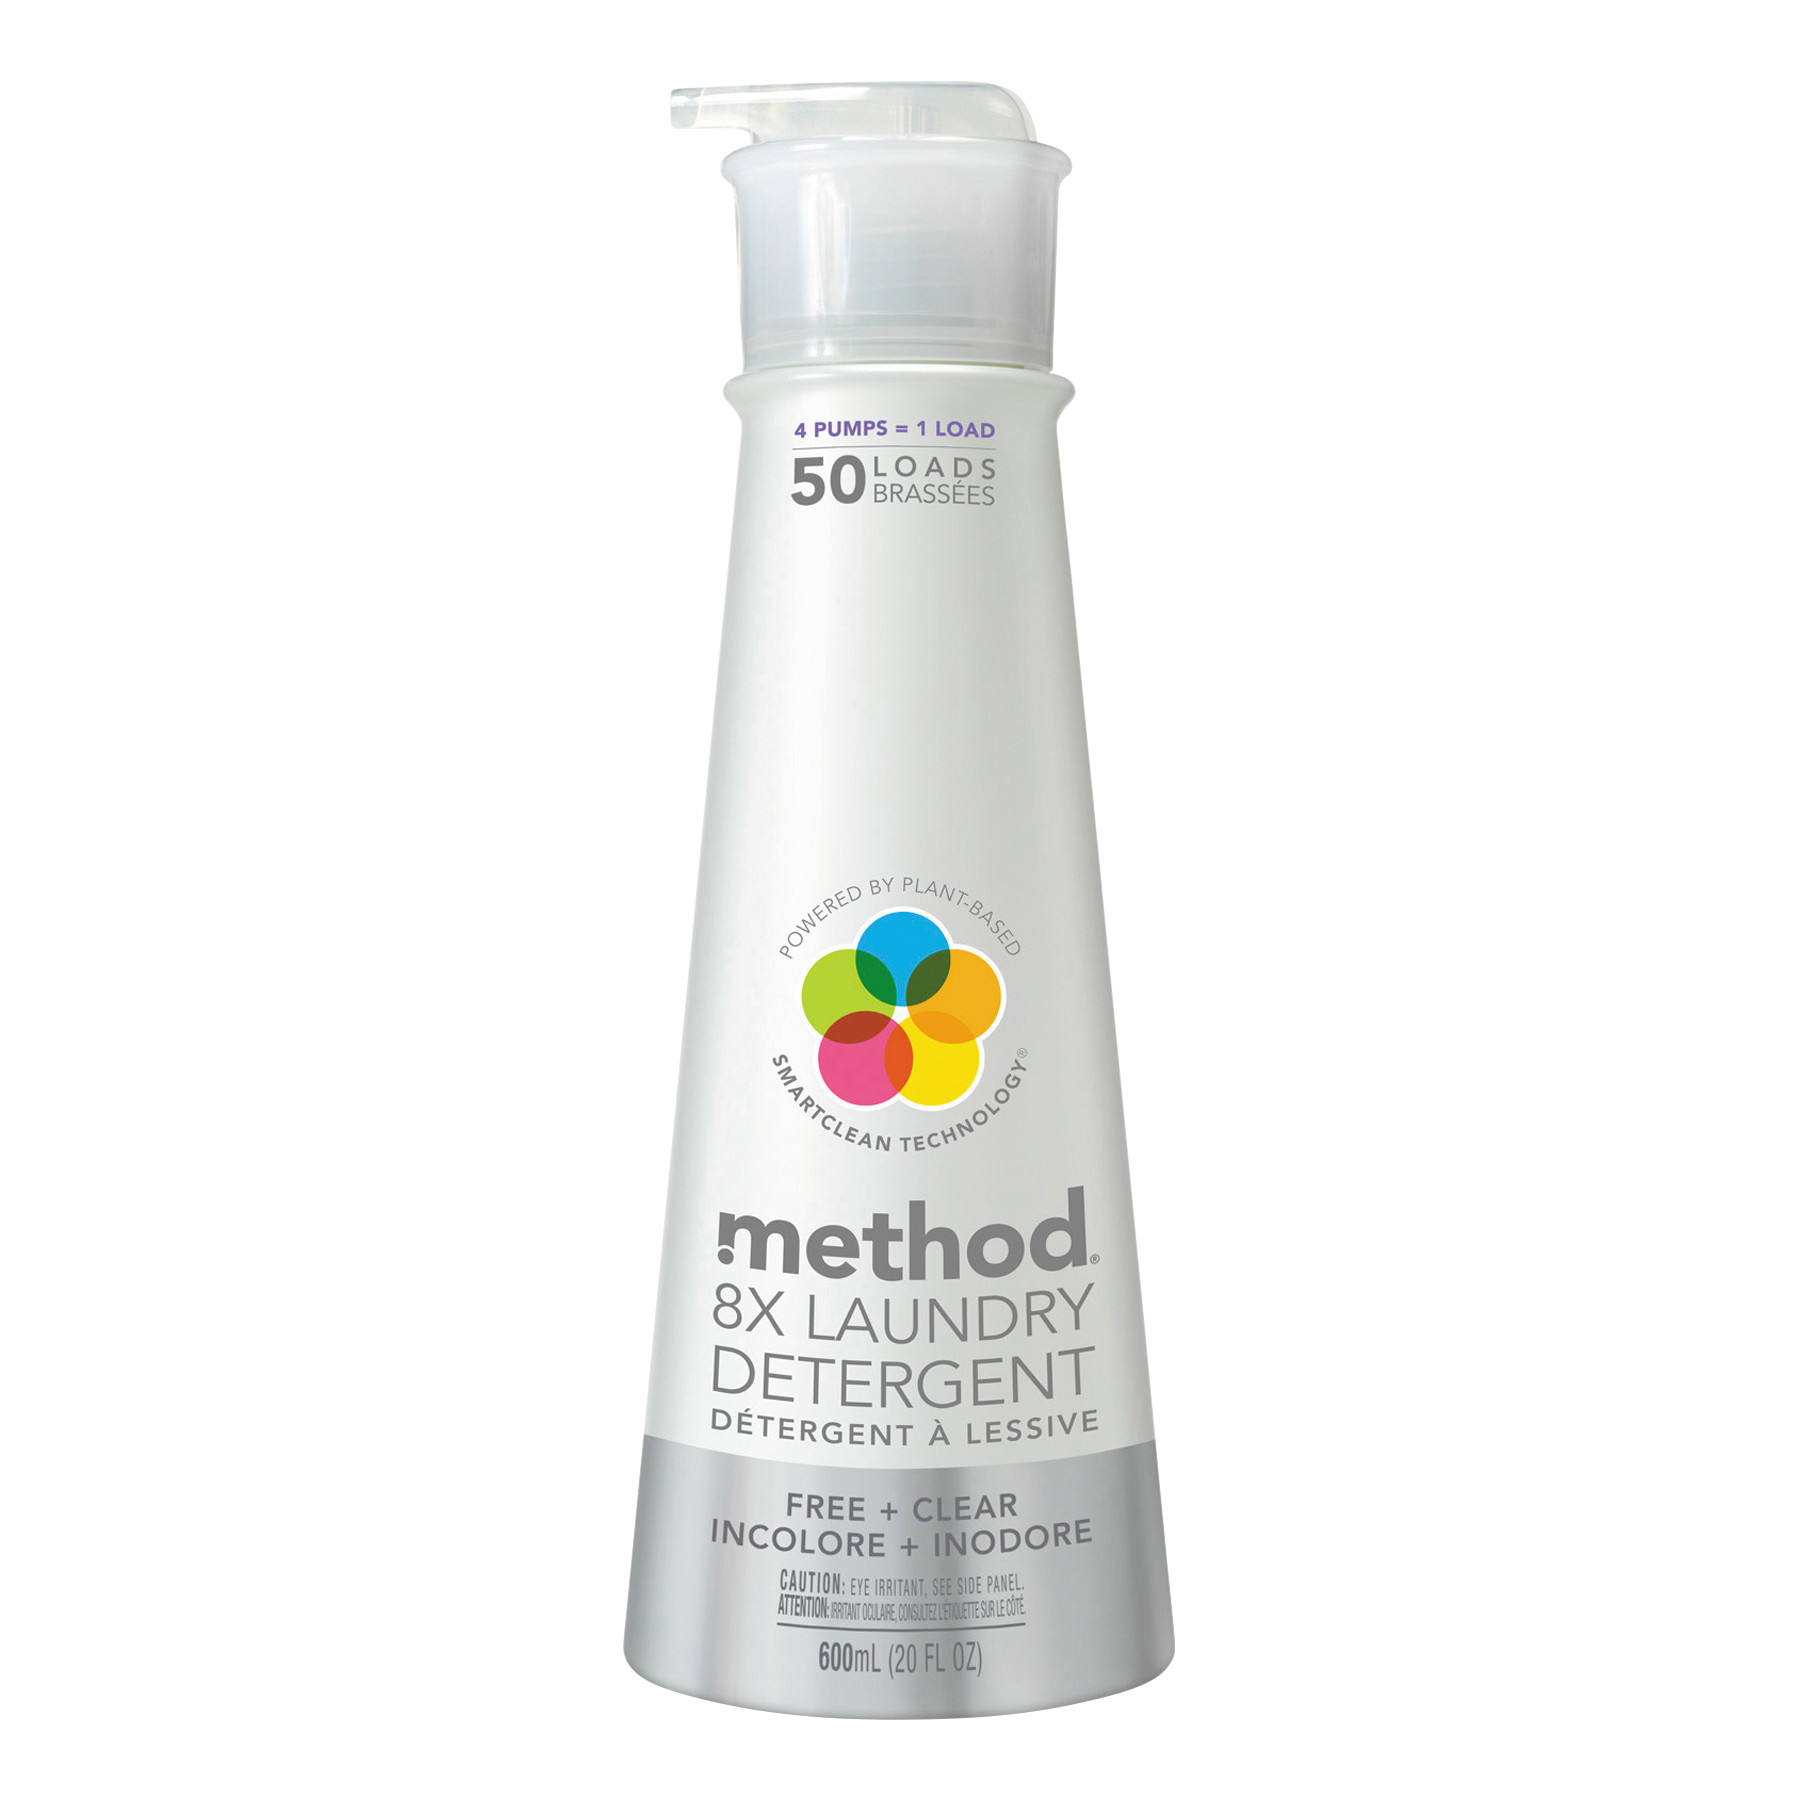 Method 8X Laundry Detergent, Free & Clear, 20 oz Bottle, 6/Carton